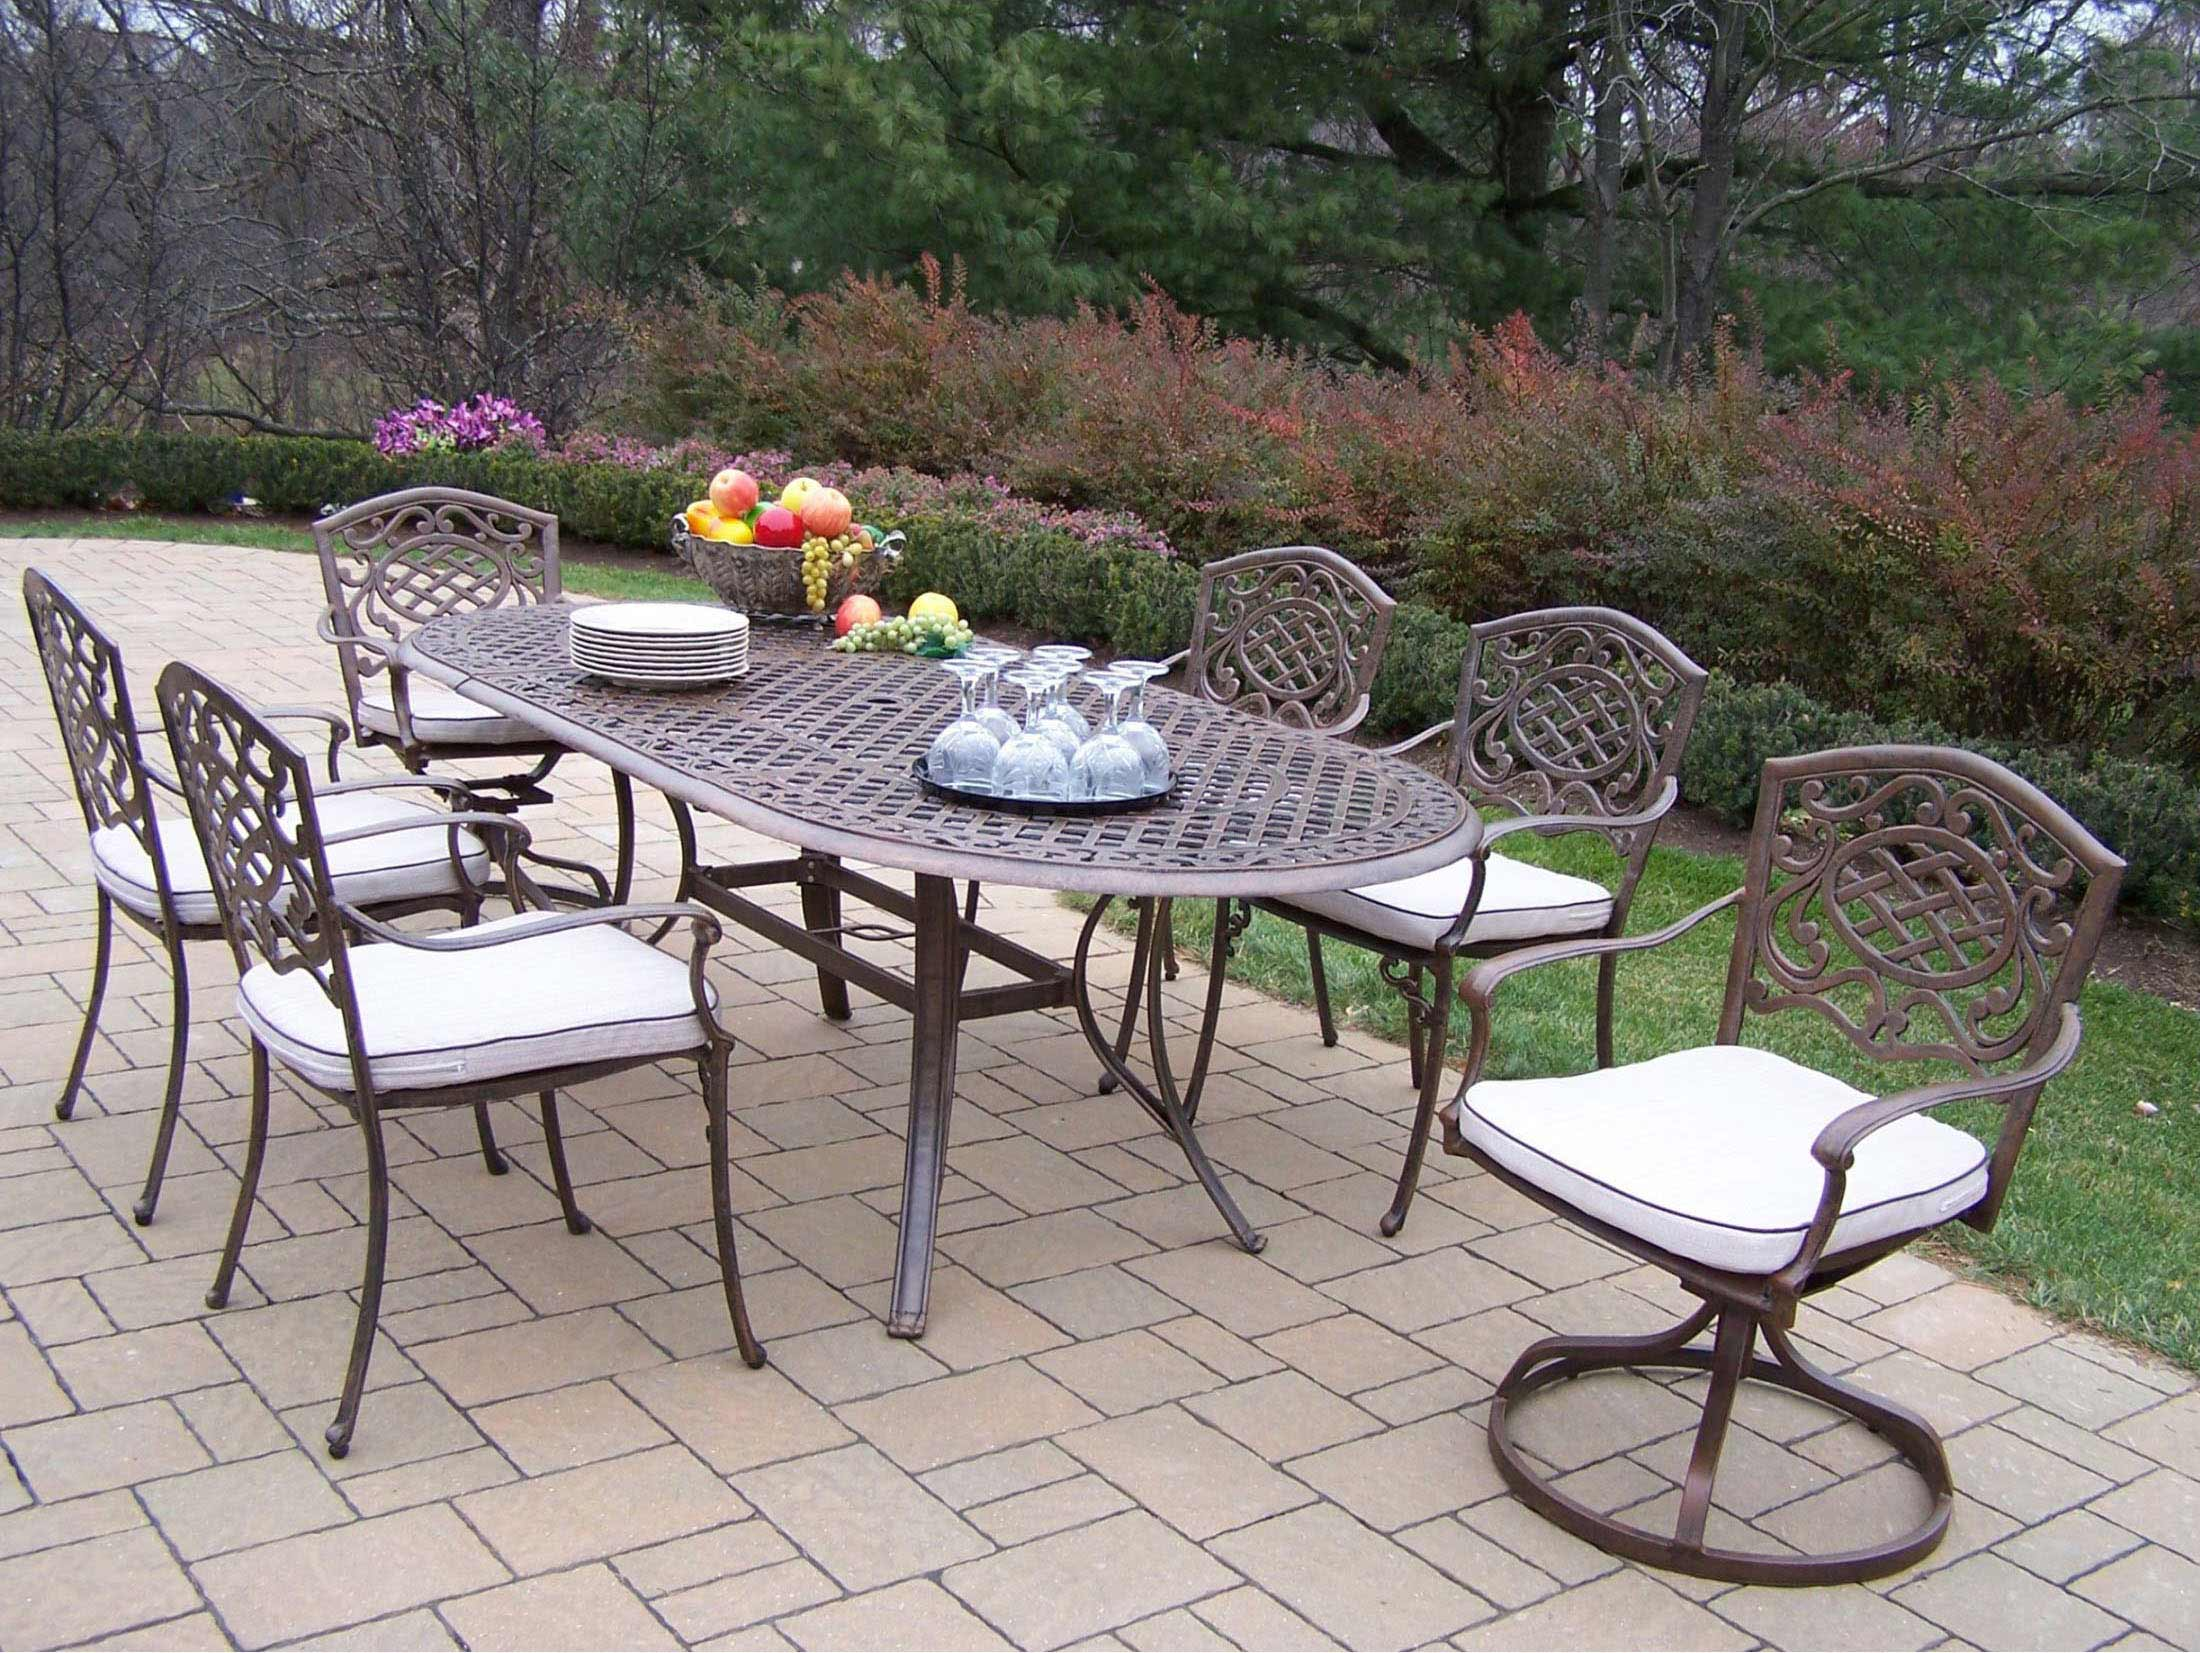 Purchase Oval Patio Dining Set Swivel Chairs Cushions Product Photo